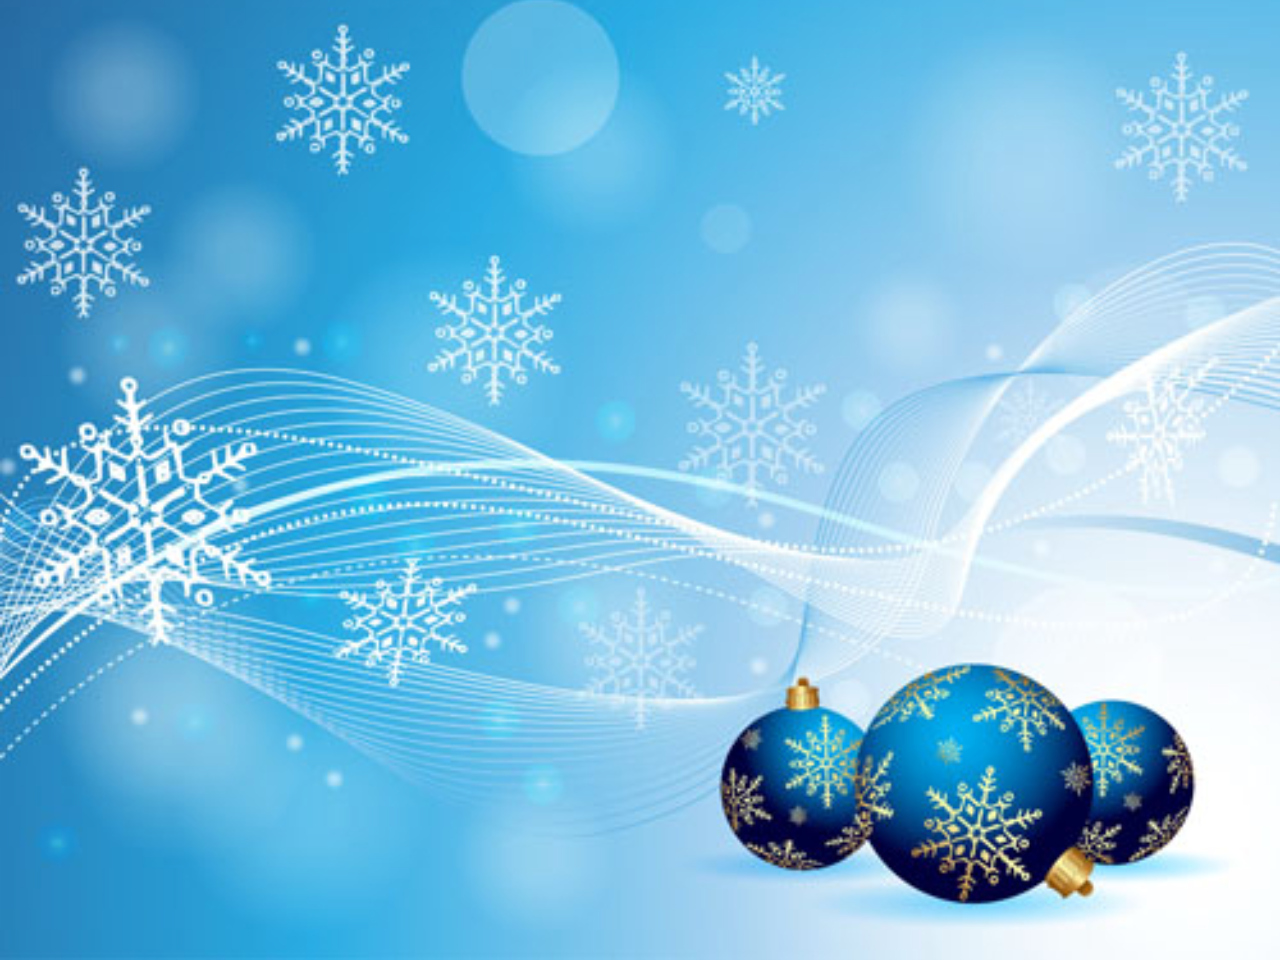 Images Of Christmas, Blue Decoration Balls  1577.79 Kb